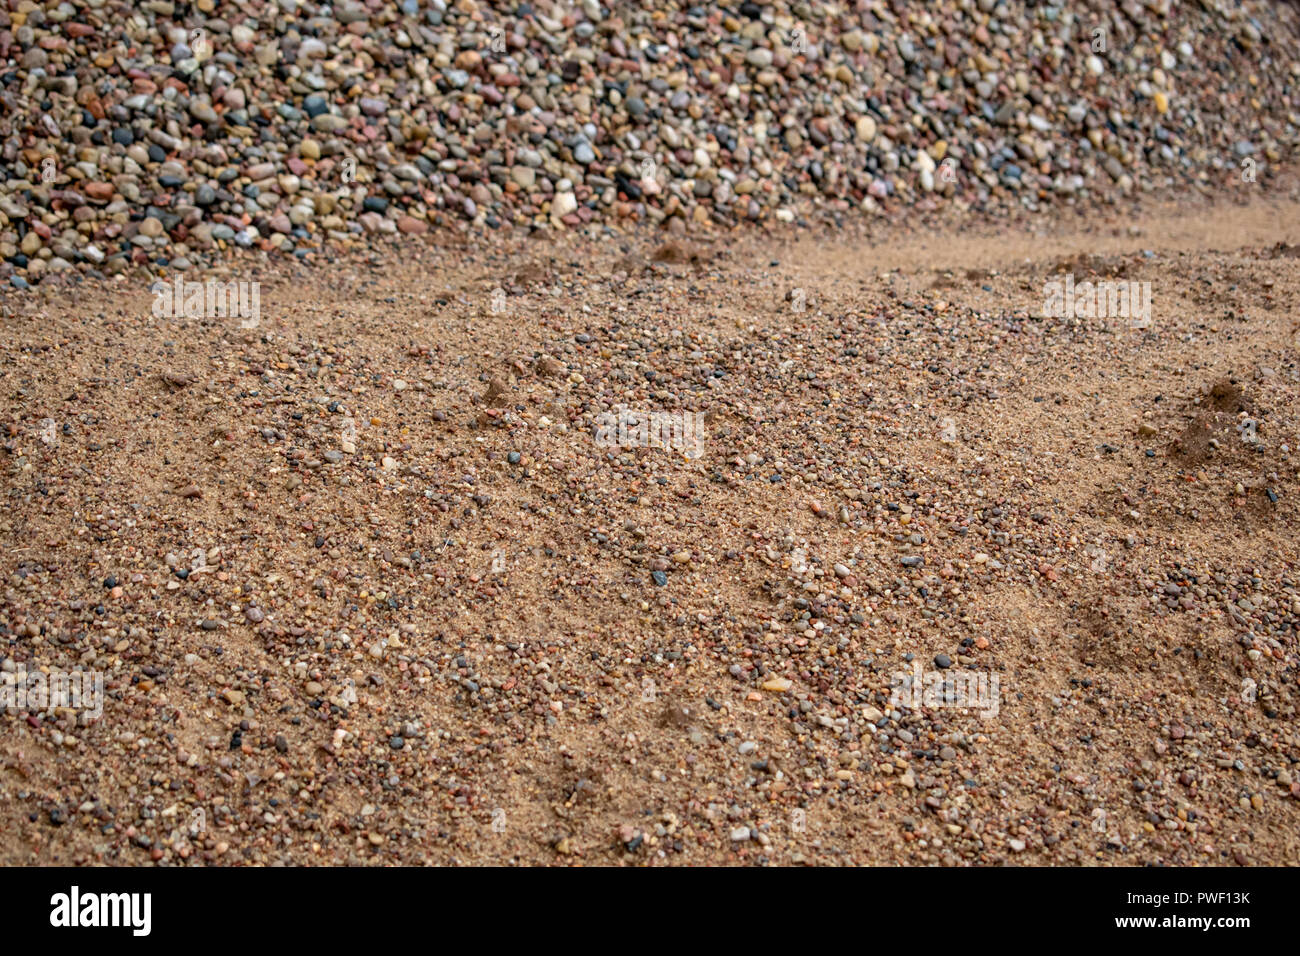 texture of stone, sandy background of natural origin background image - Stock Image